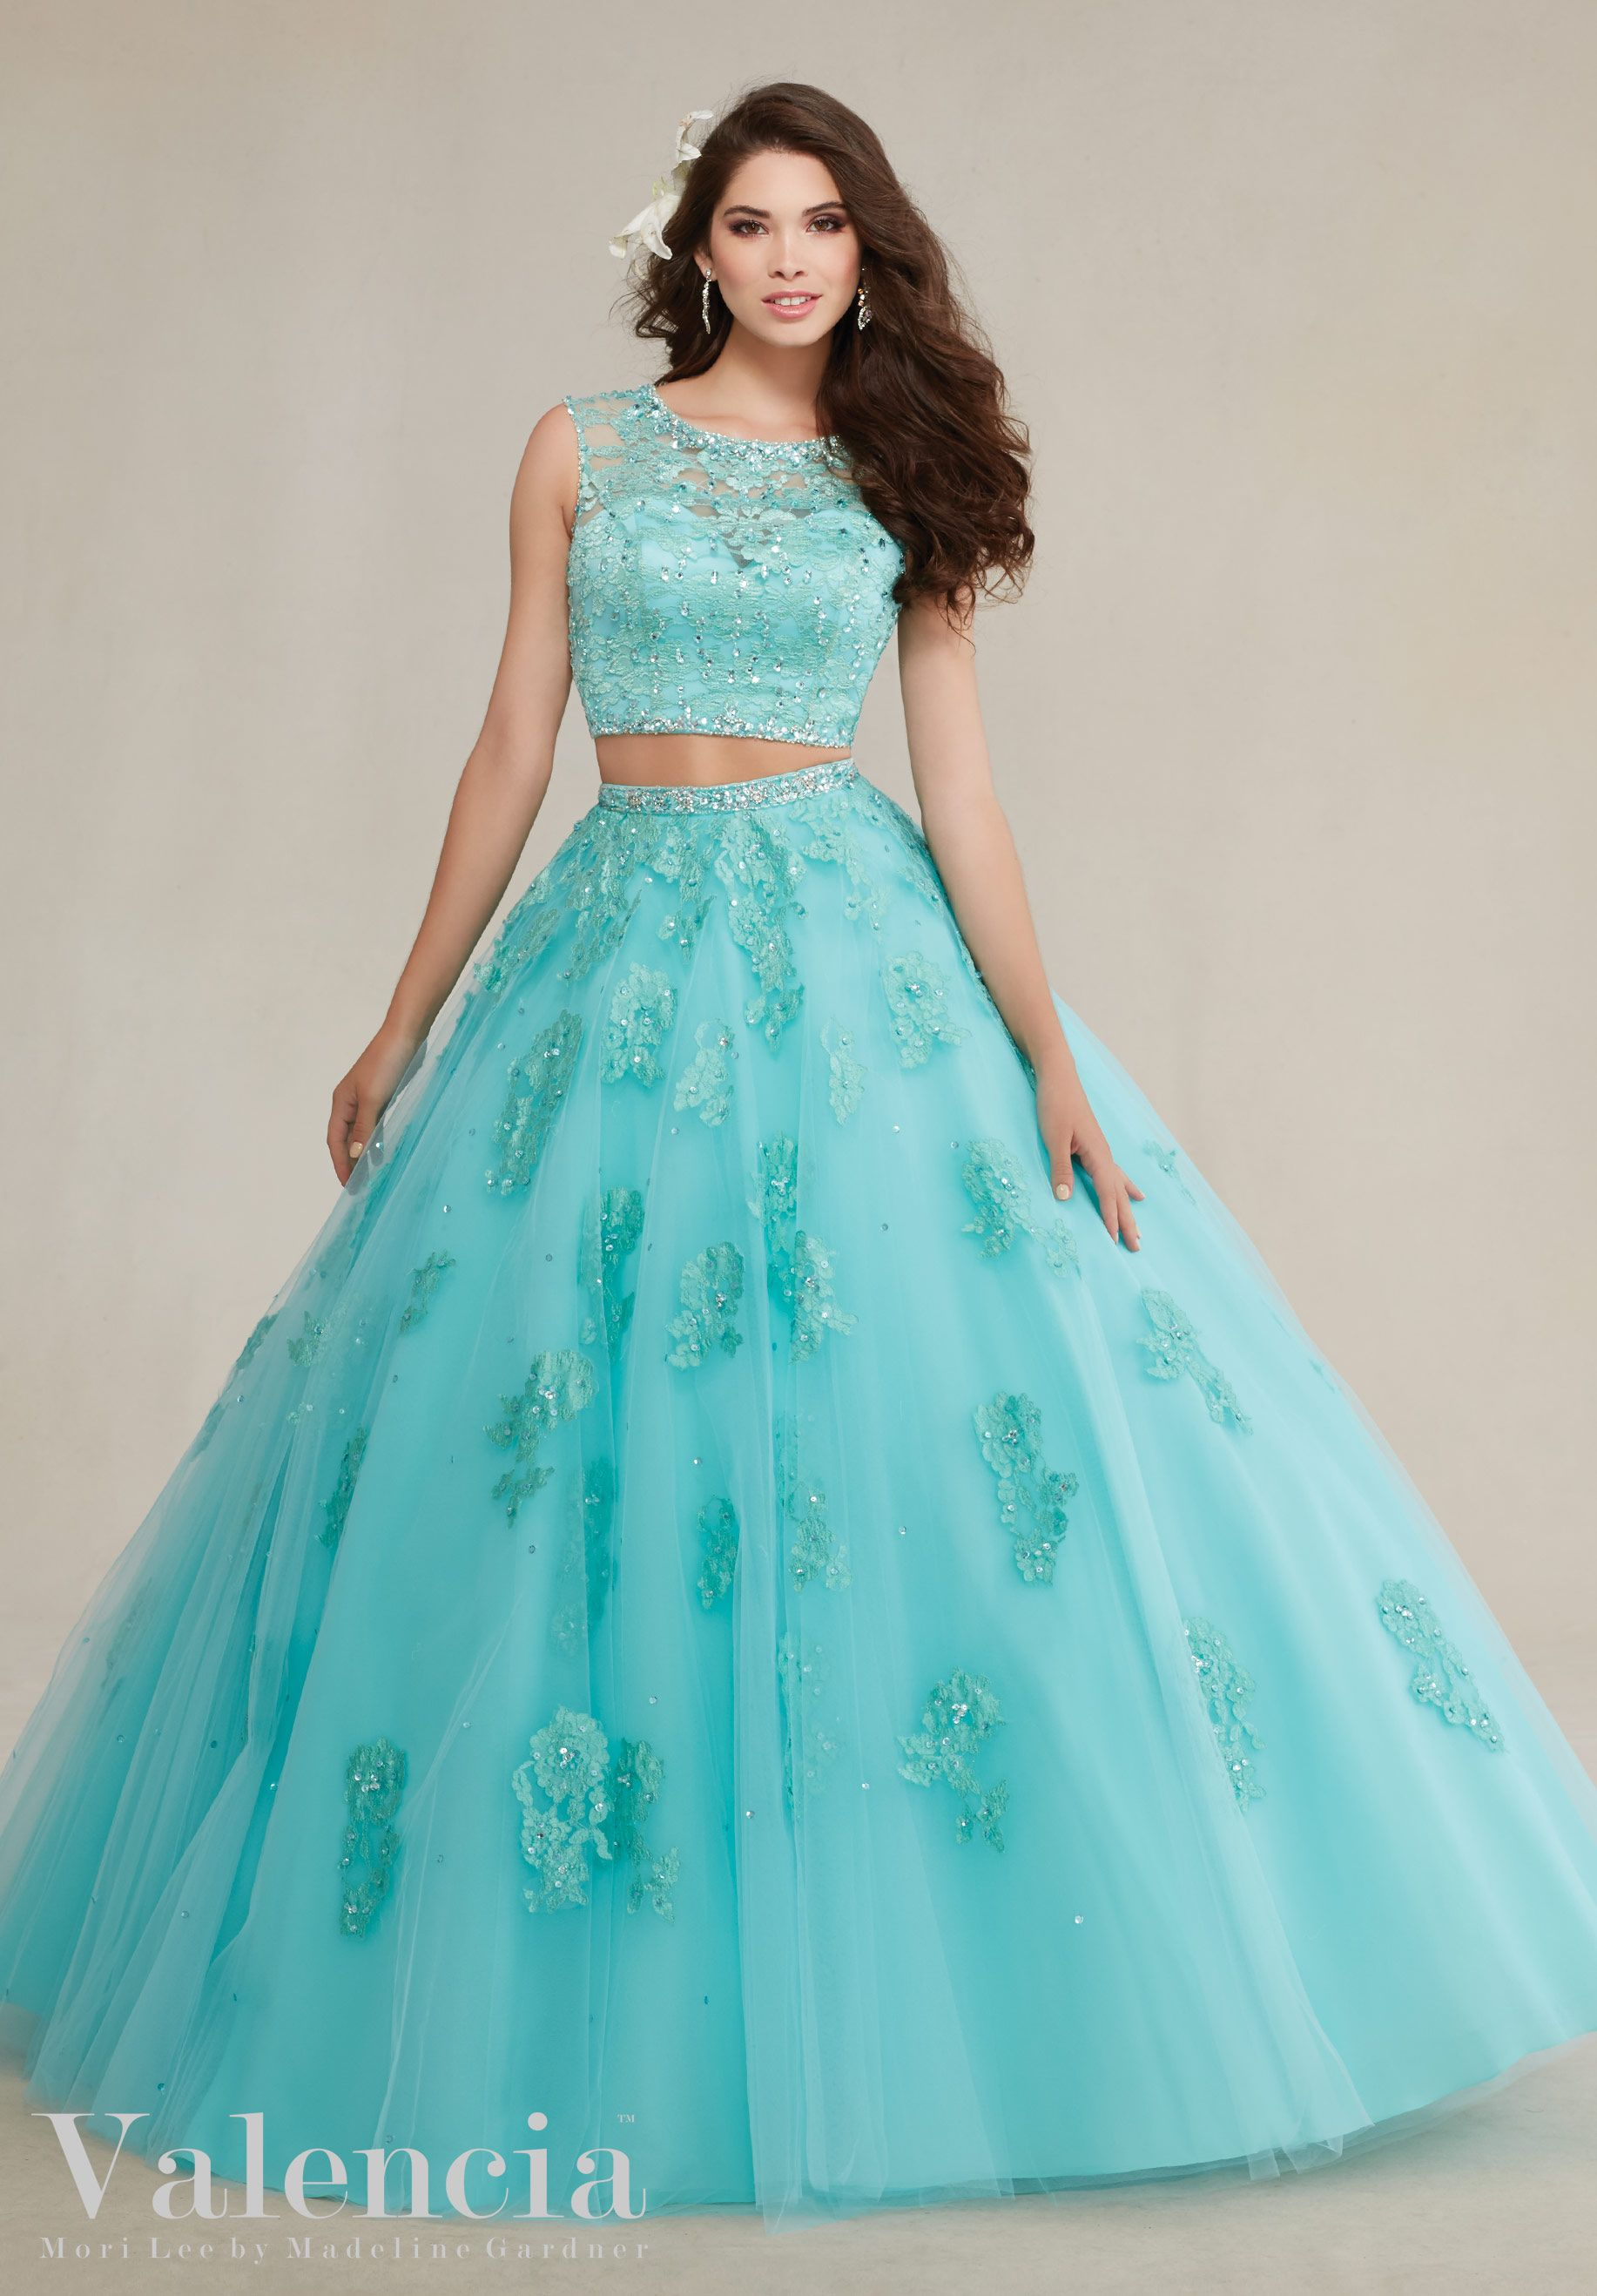 Quinceanera Dresses by Morilee designed by Madeline Gardner. Two-Piece Tulle  Ball Dress with Beaded Lace Appliqu̩s Quinceanera Dress 49a5fa79da15